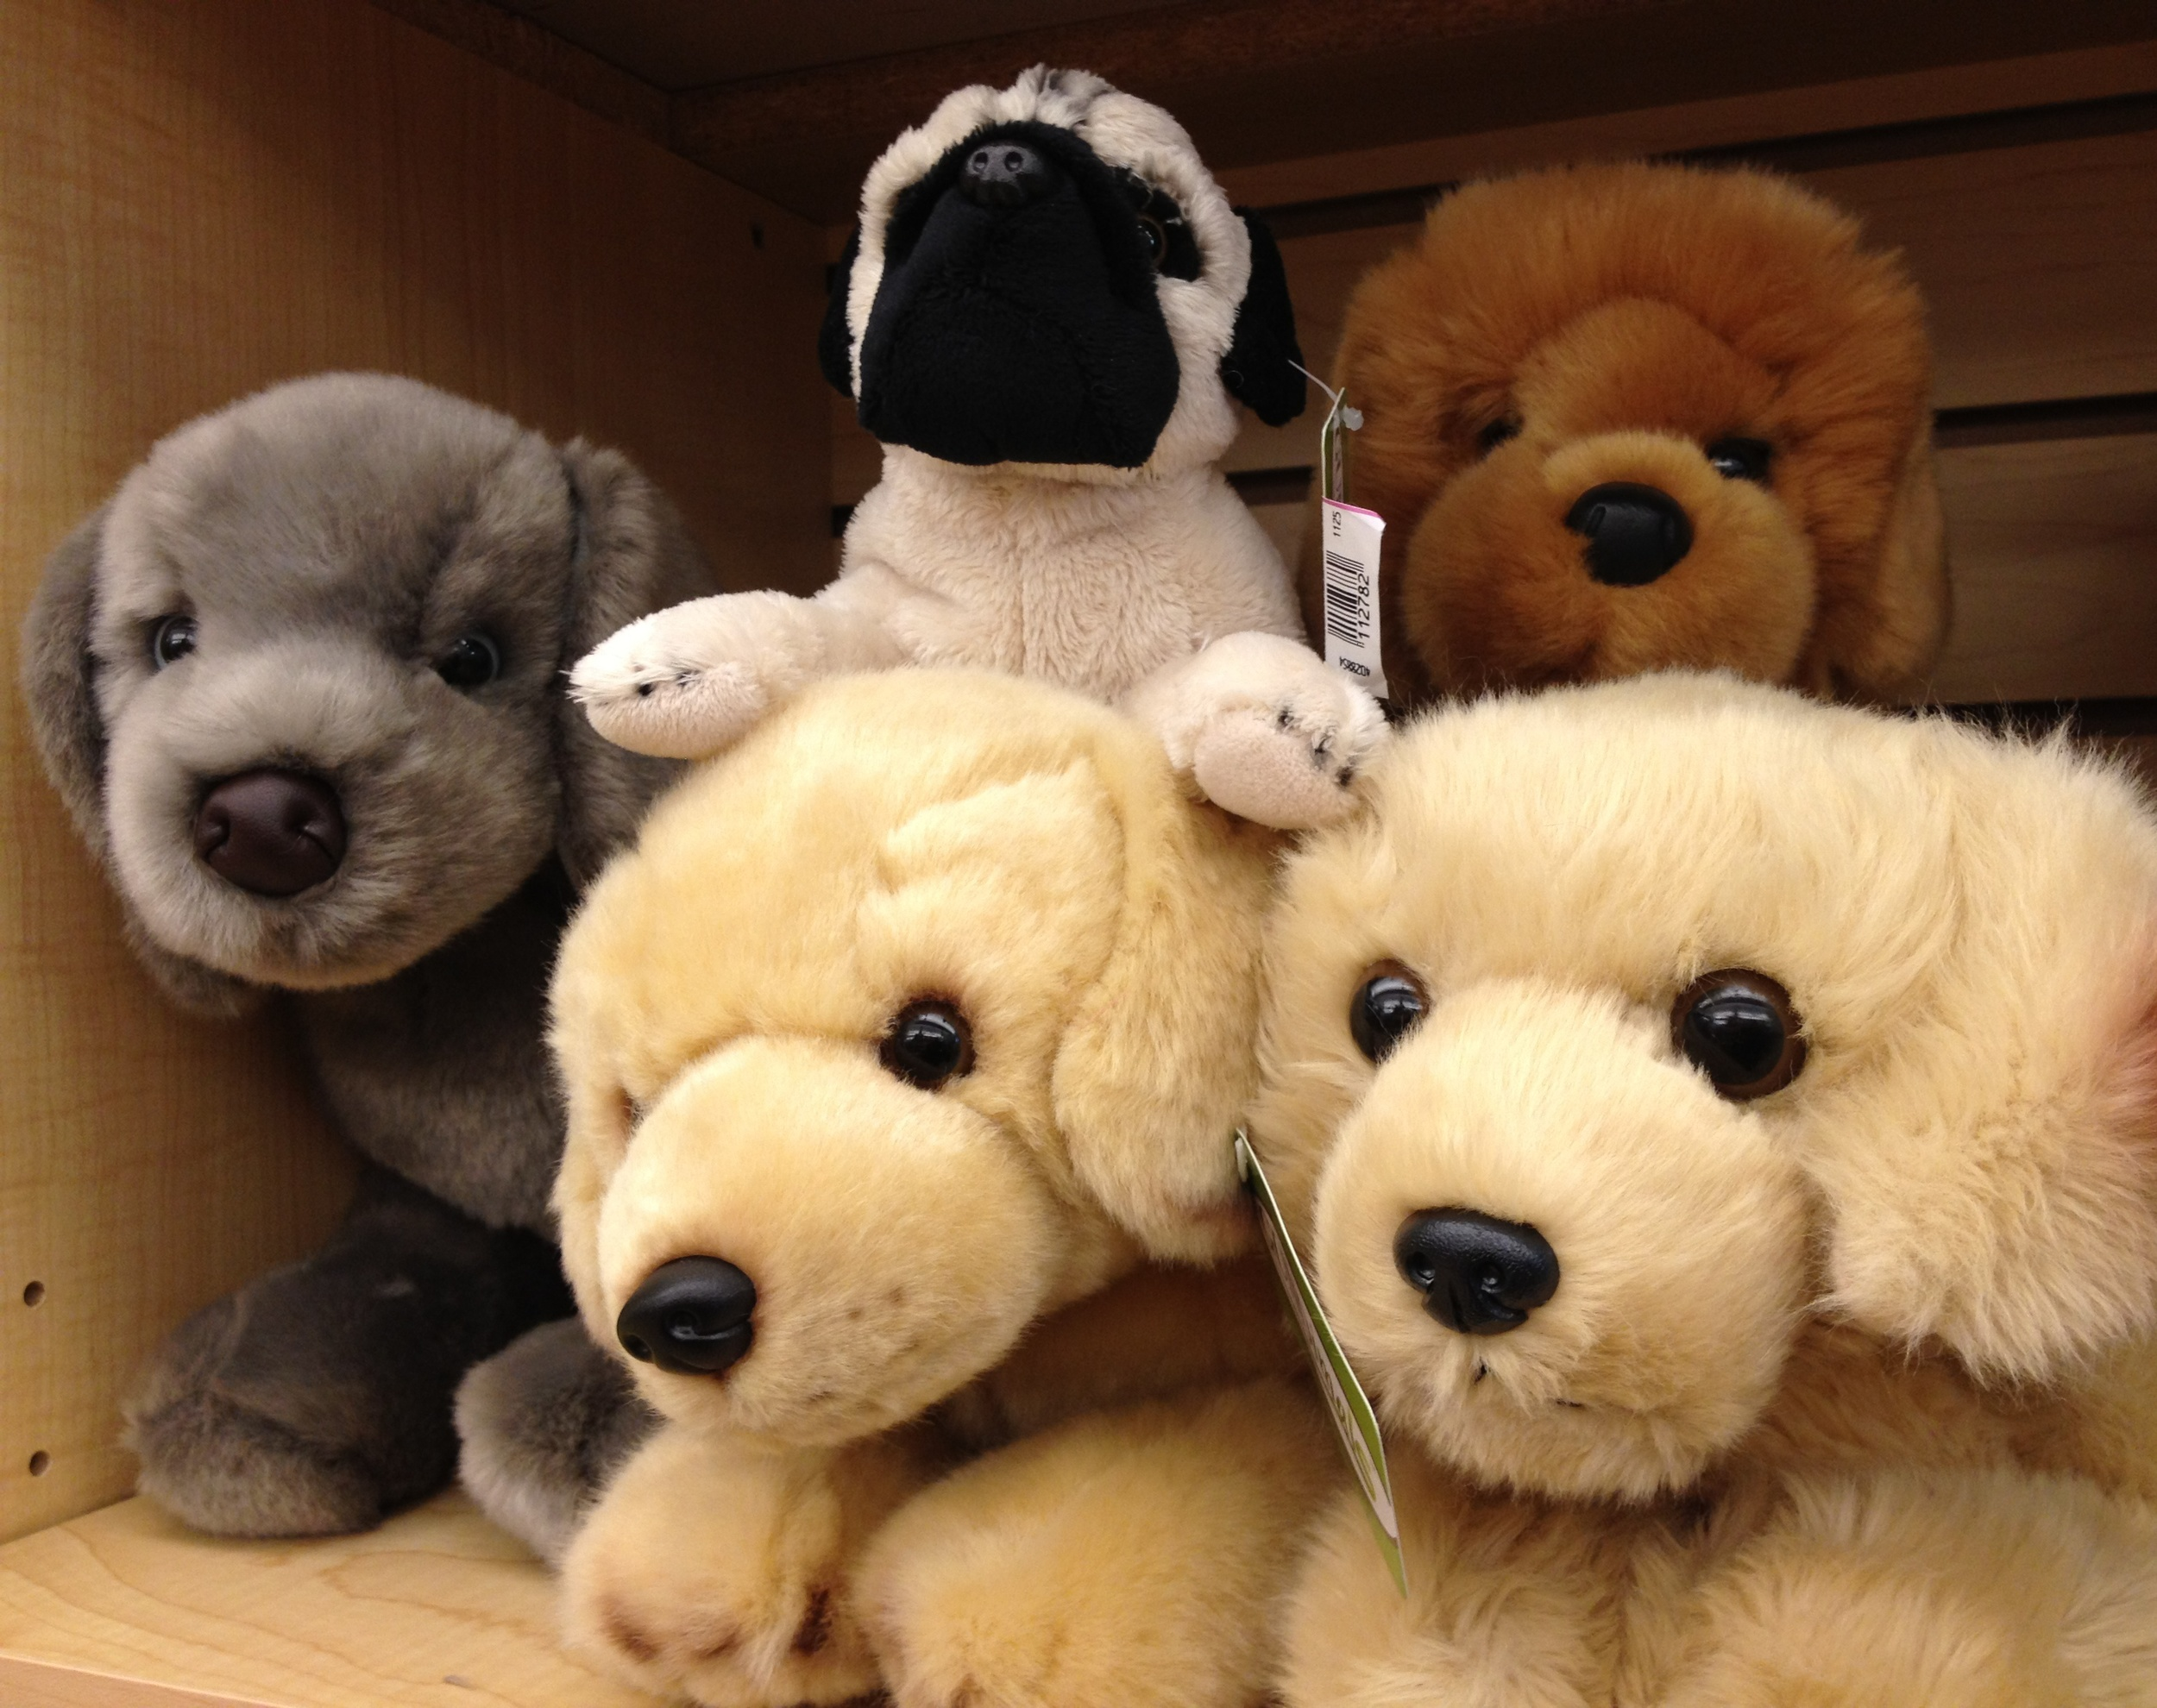 Toys_in_Portland_Stuffed_Animals_Plush_Dogs